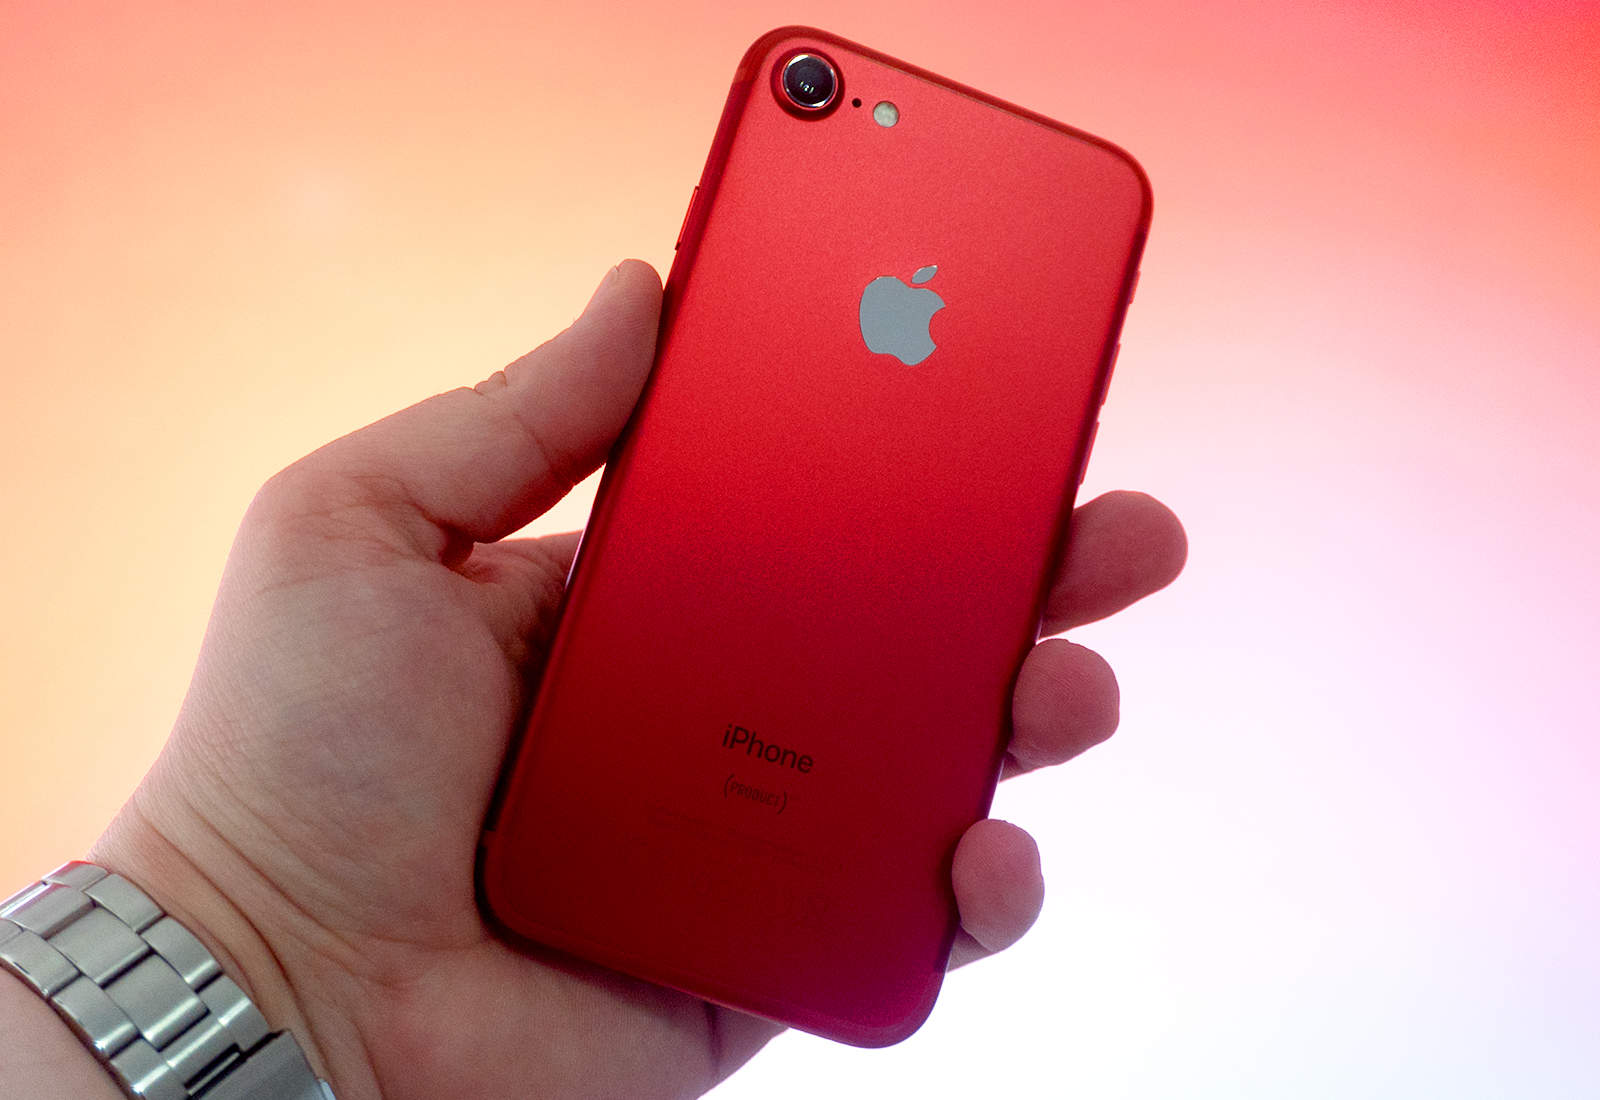 Red iPhone in hand